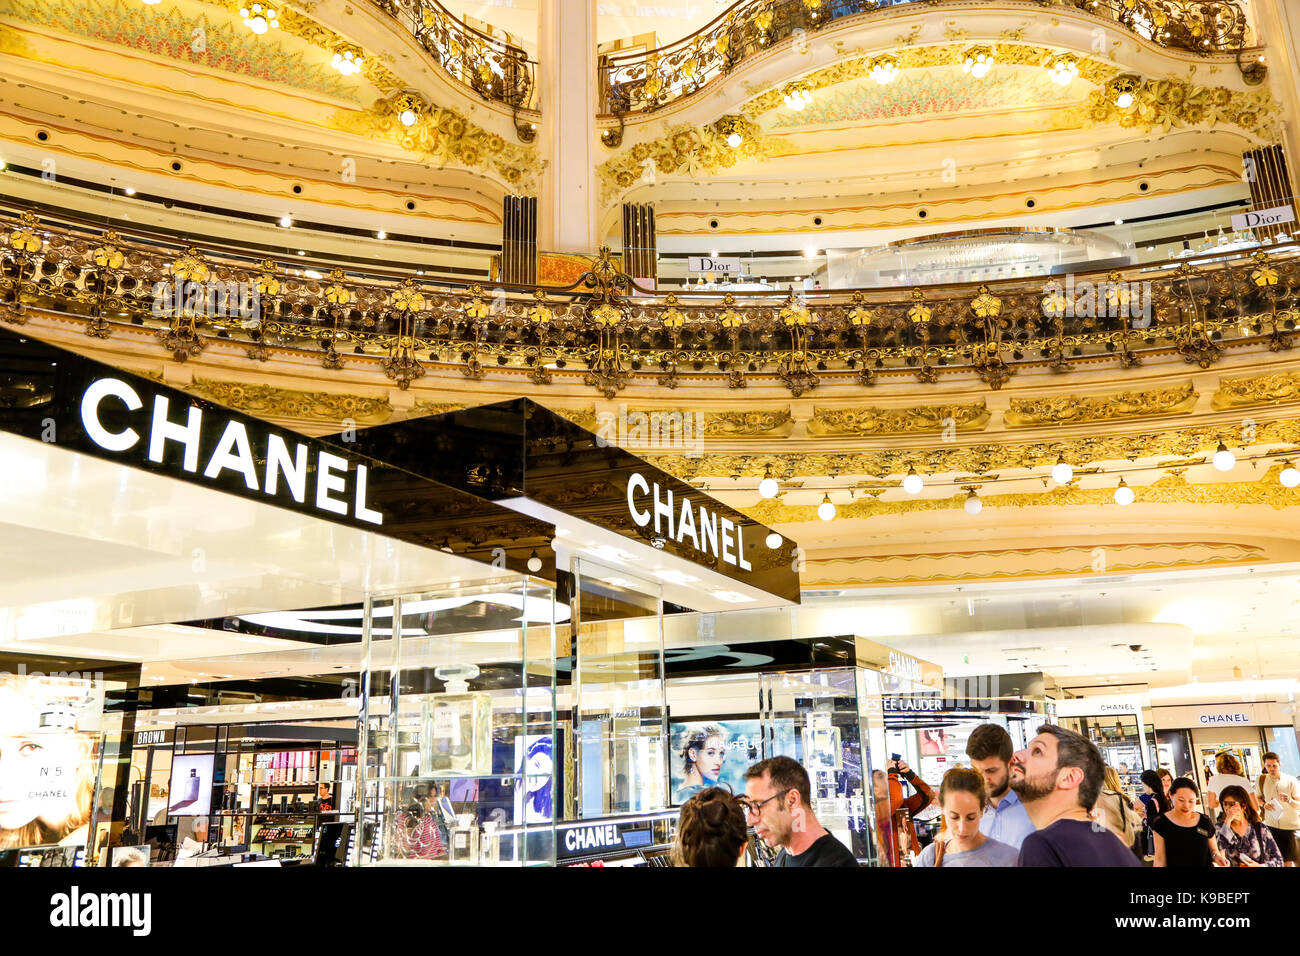 chanel store in paris france stock photos chanel store. Black Bedroom Furniture Sets. Home Design Ideas